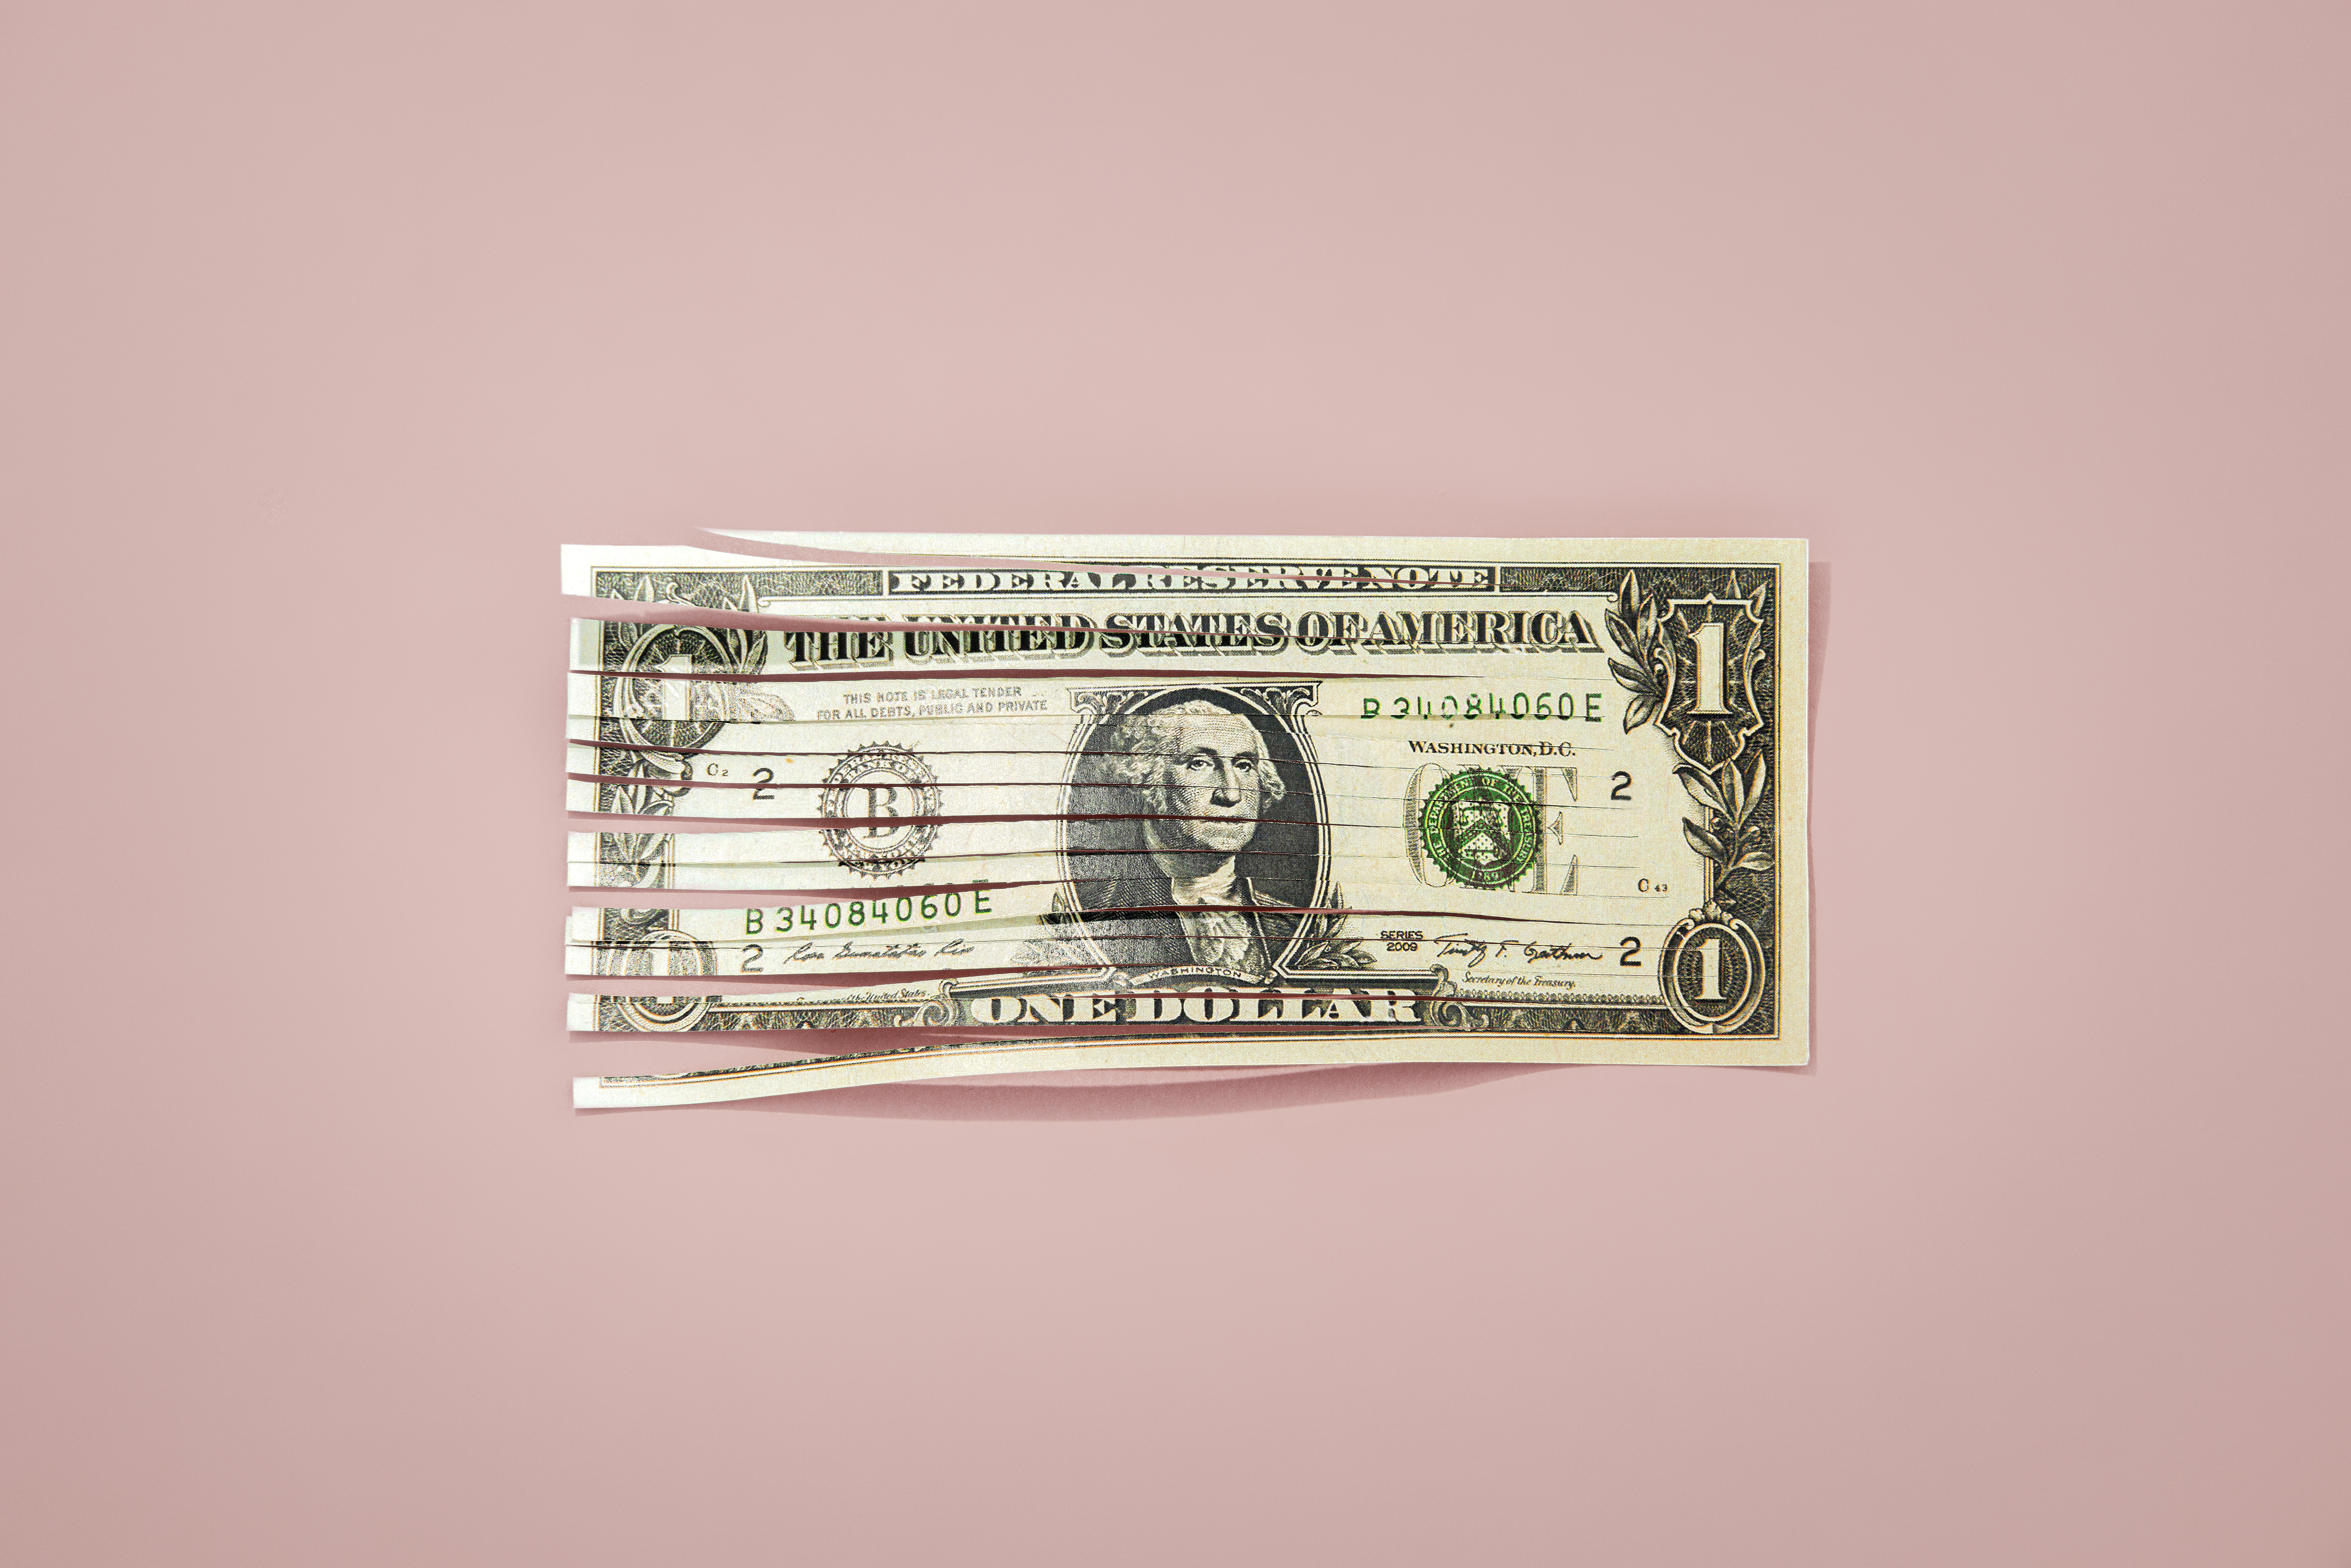 An image of a shredded dollar bill against a pink background.